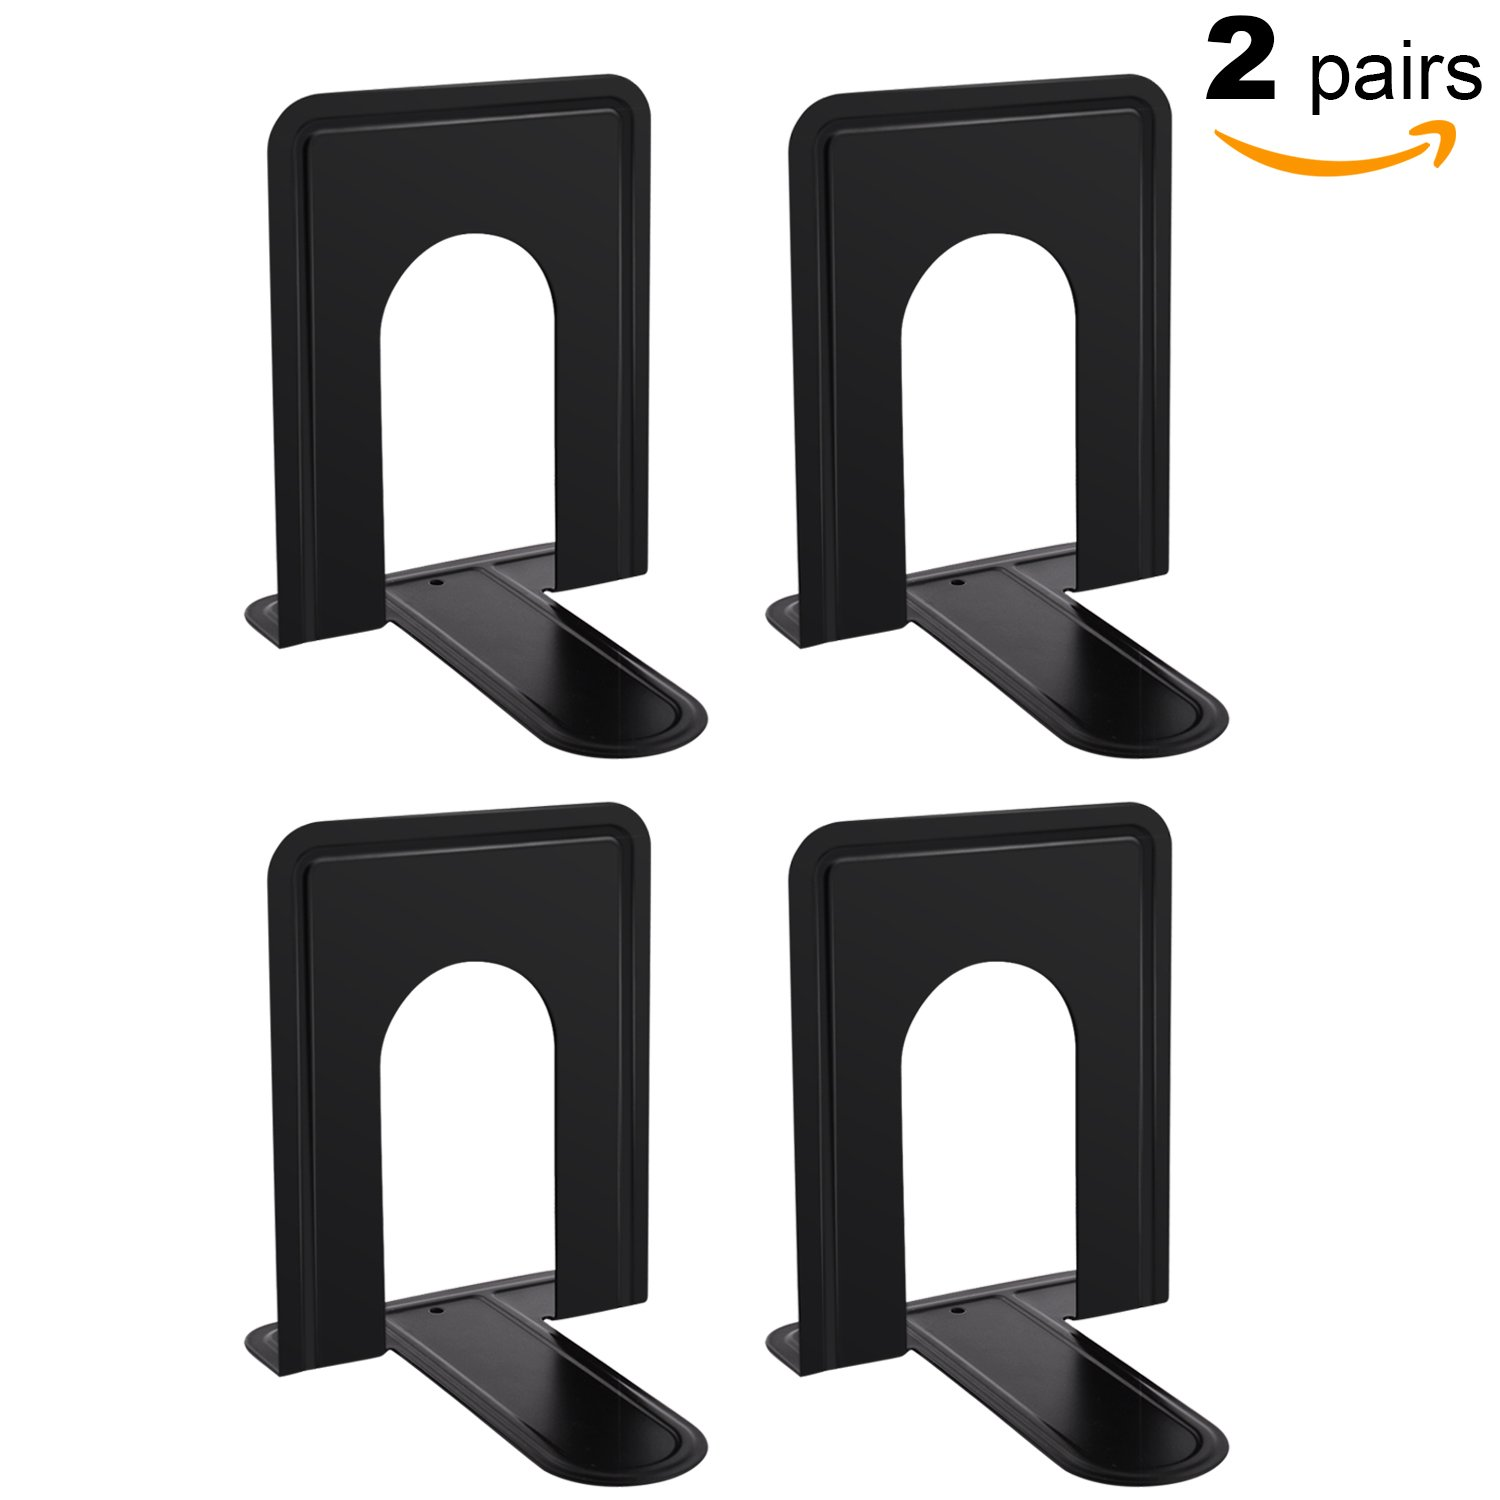 MaxGear Universal Bookends Heavy Duty Metal Bookend Supports for Books, Standard, 6'' x 4 3/5'' x 6'', Nonskid, 2 Pair/4 Piece